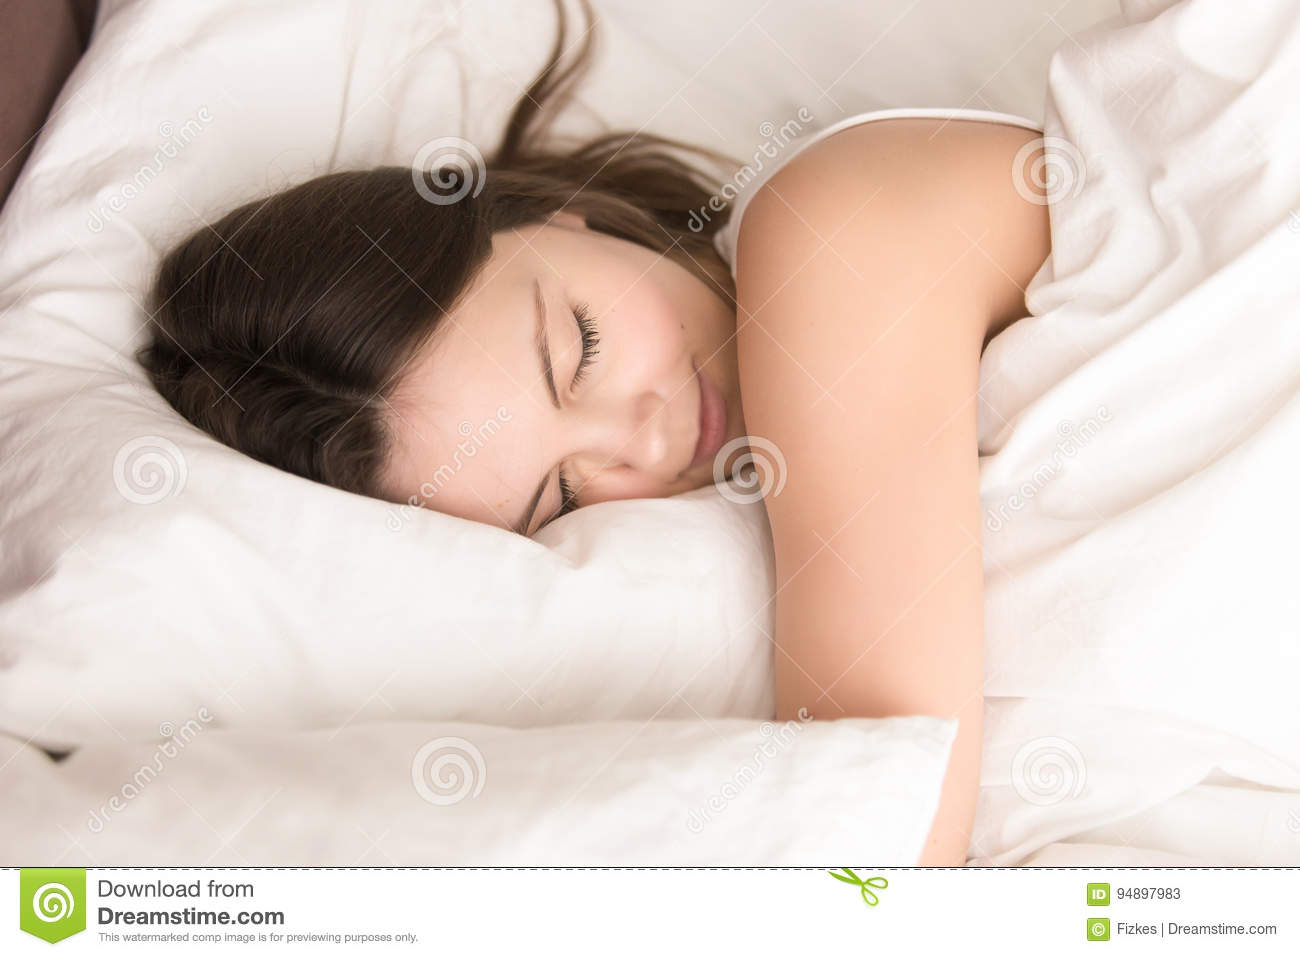 Woman napping while hugging soft pillow in bed